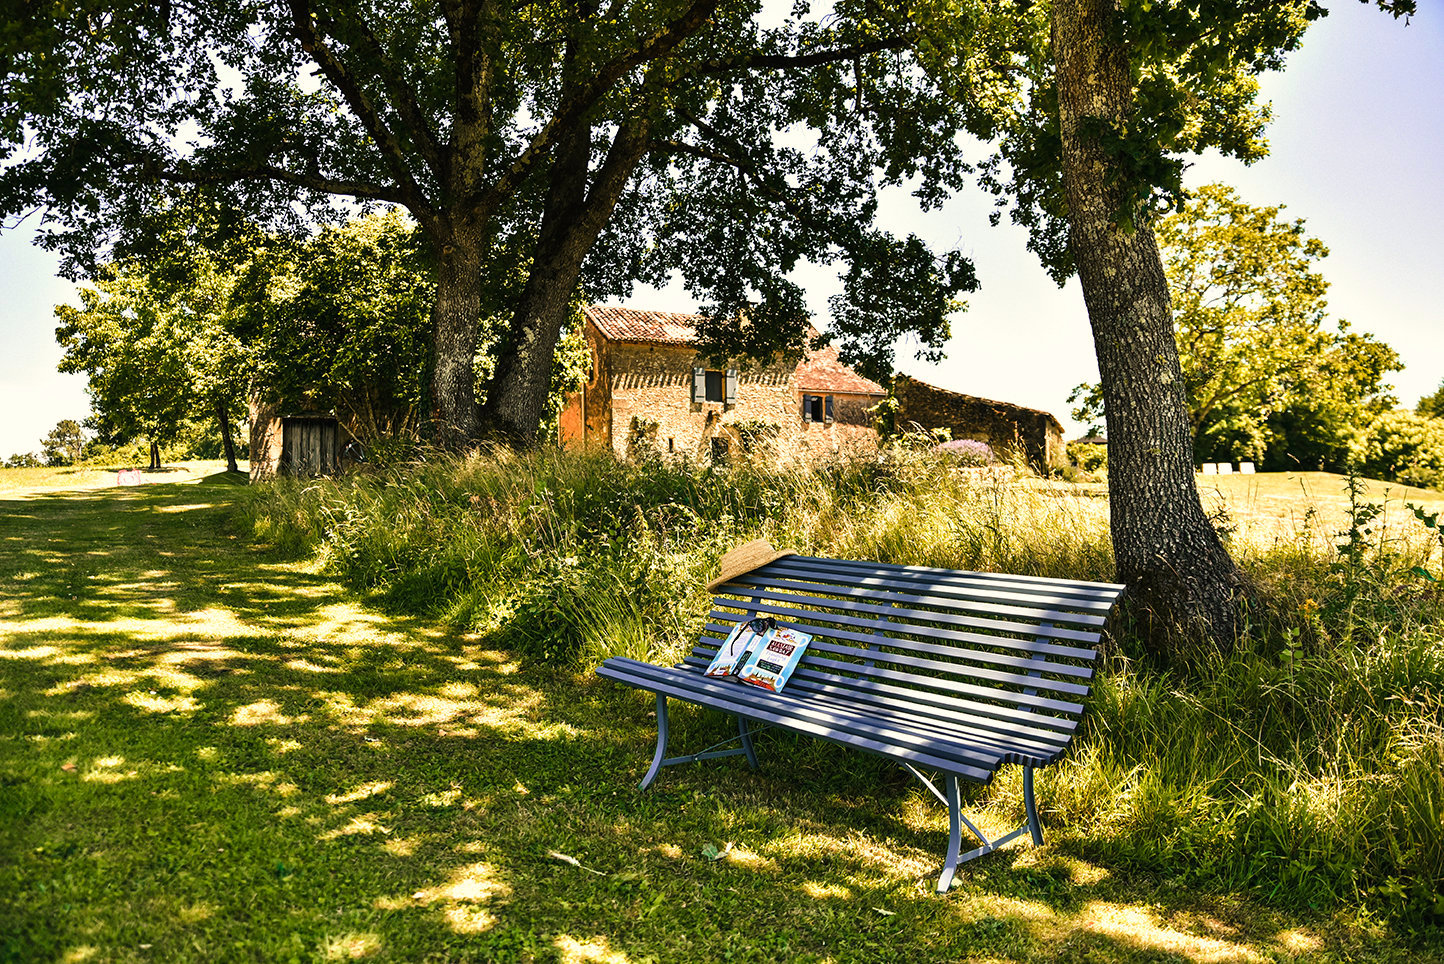 Tranquility on the sunset bench under oak trees in the garden of Le Mas & Le Mazet, vacation homes in the Dordogne